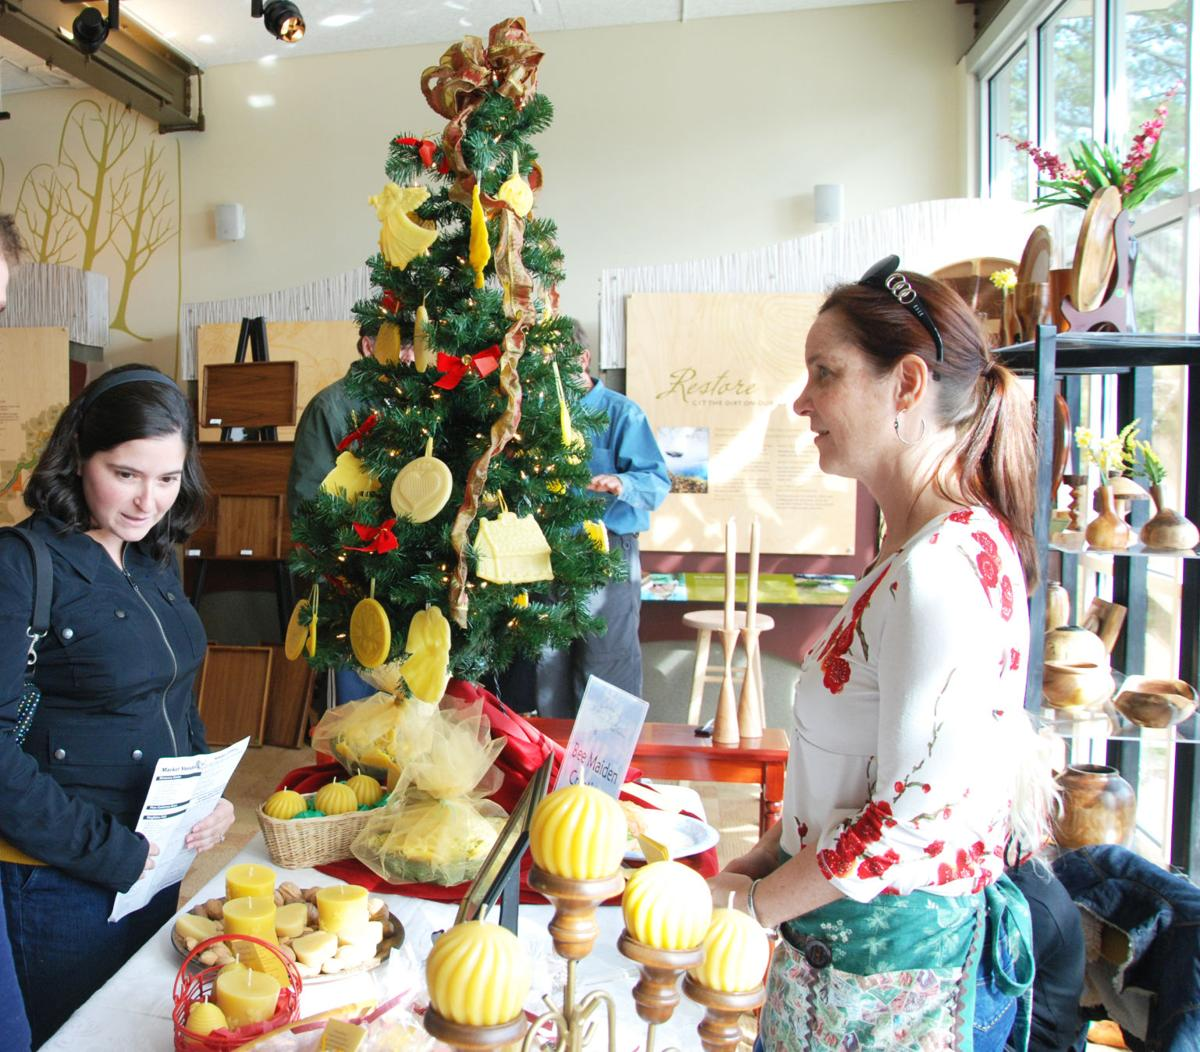 Back to Nature Holiday Market, December 7